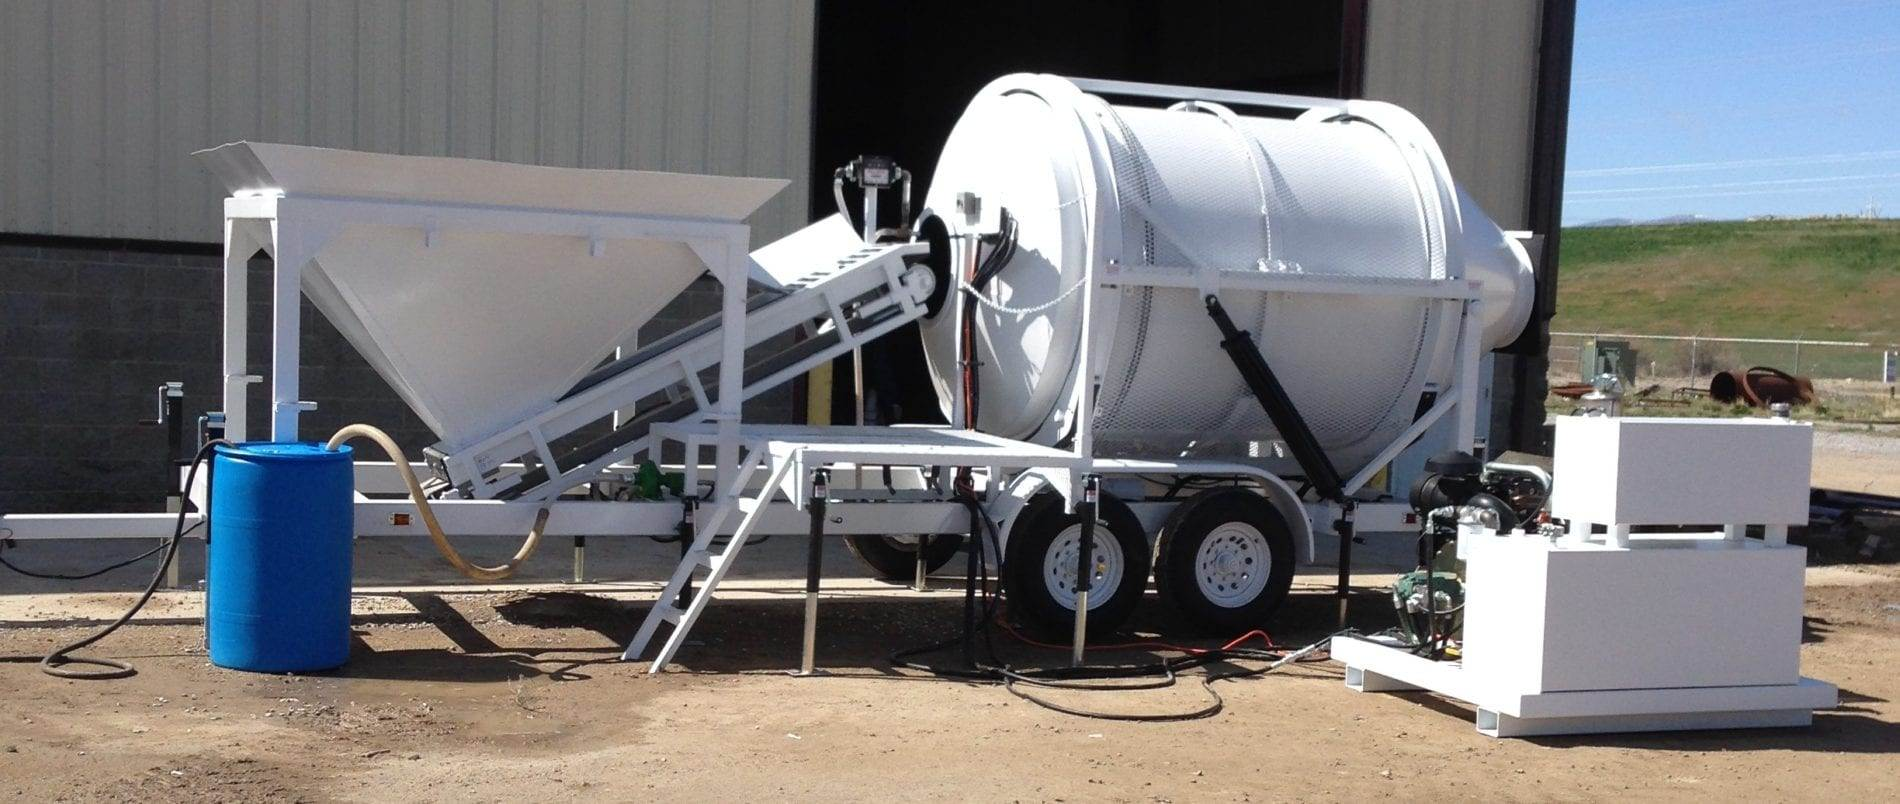 Portable Concrete Mixer Batching Plant 2 1/2 Cubic Yards Mix Right EZ 2-3 at Right Manufacturing Systems Inc.